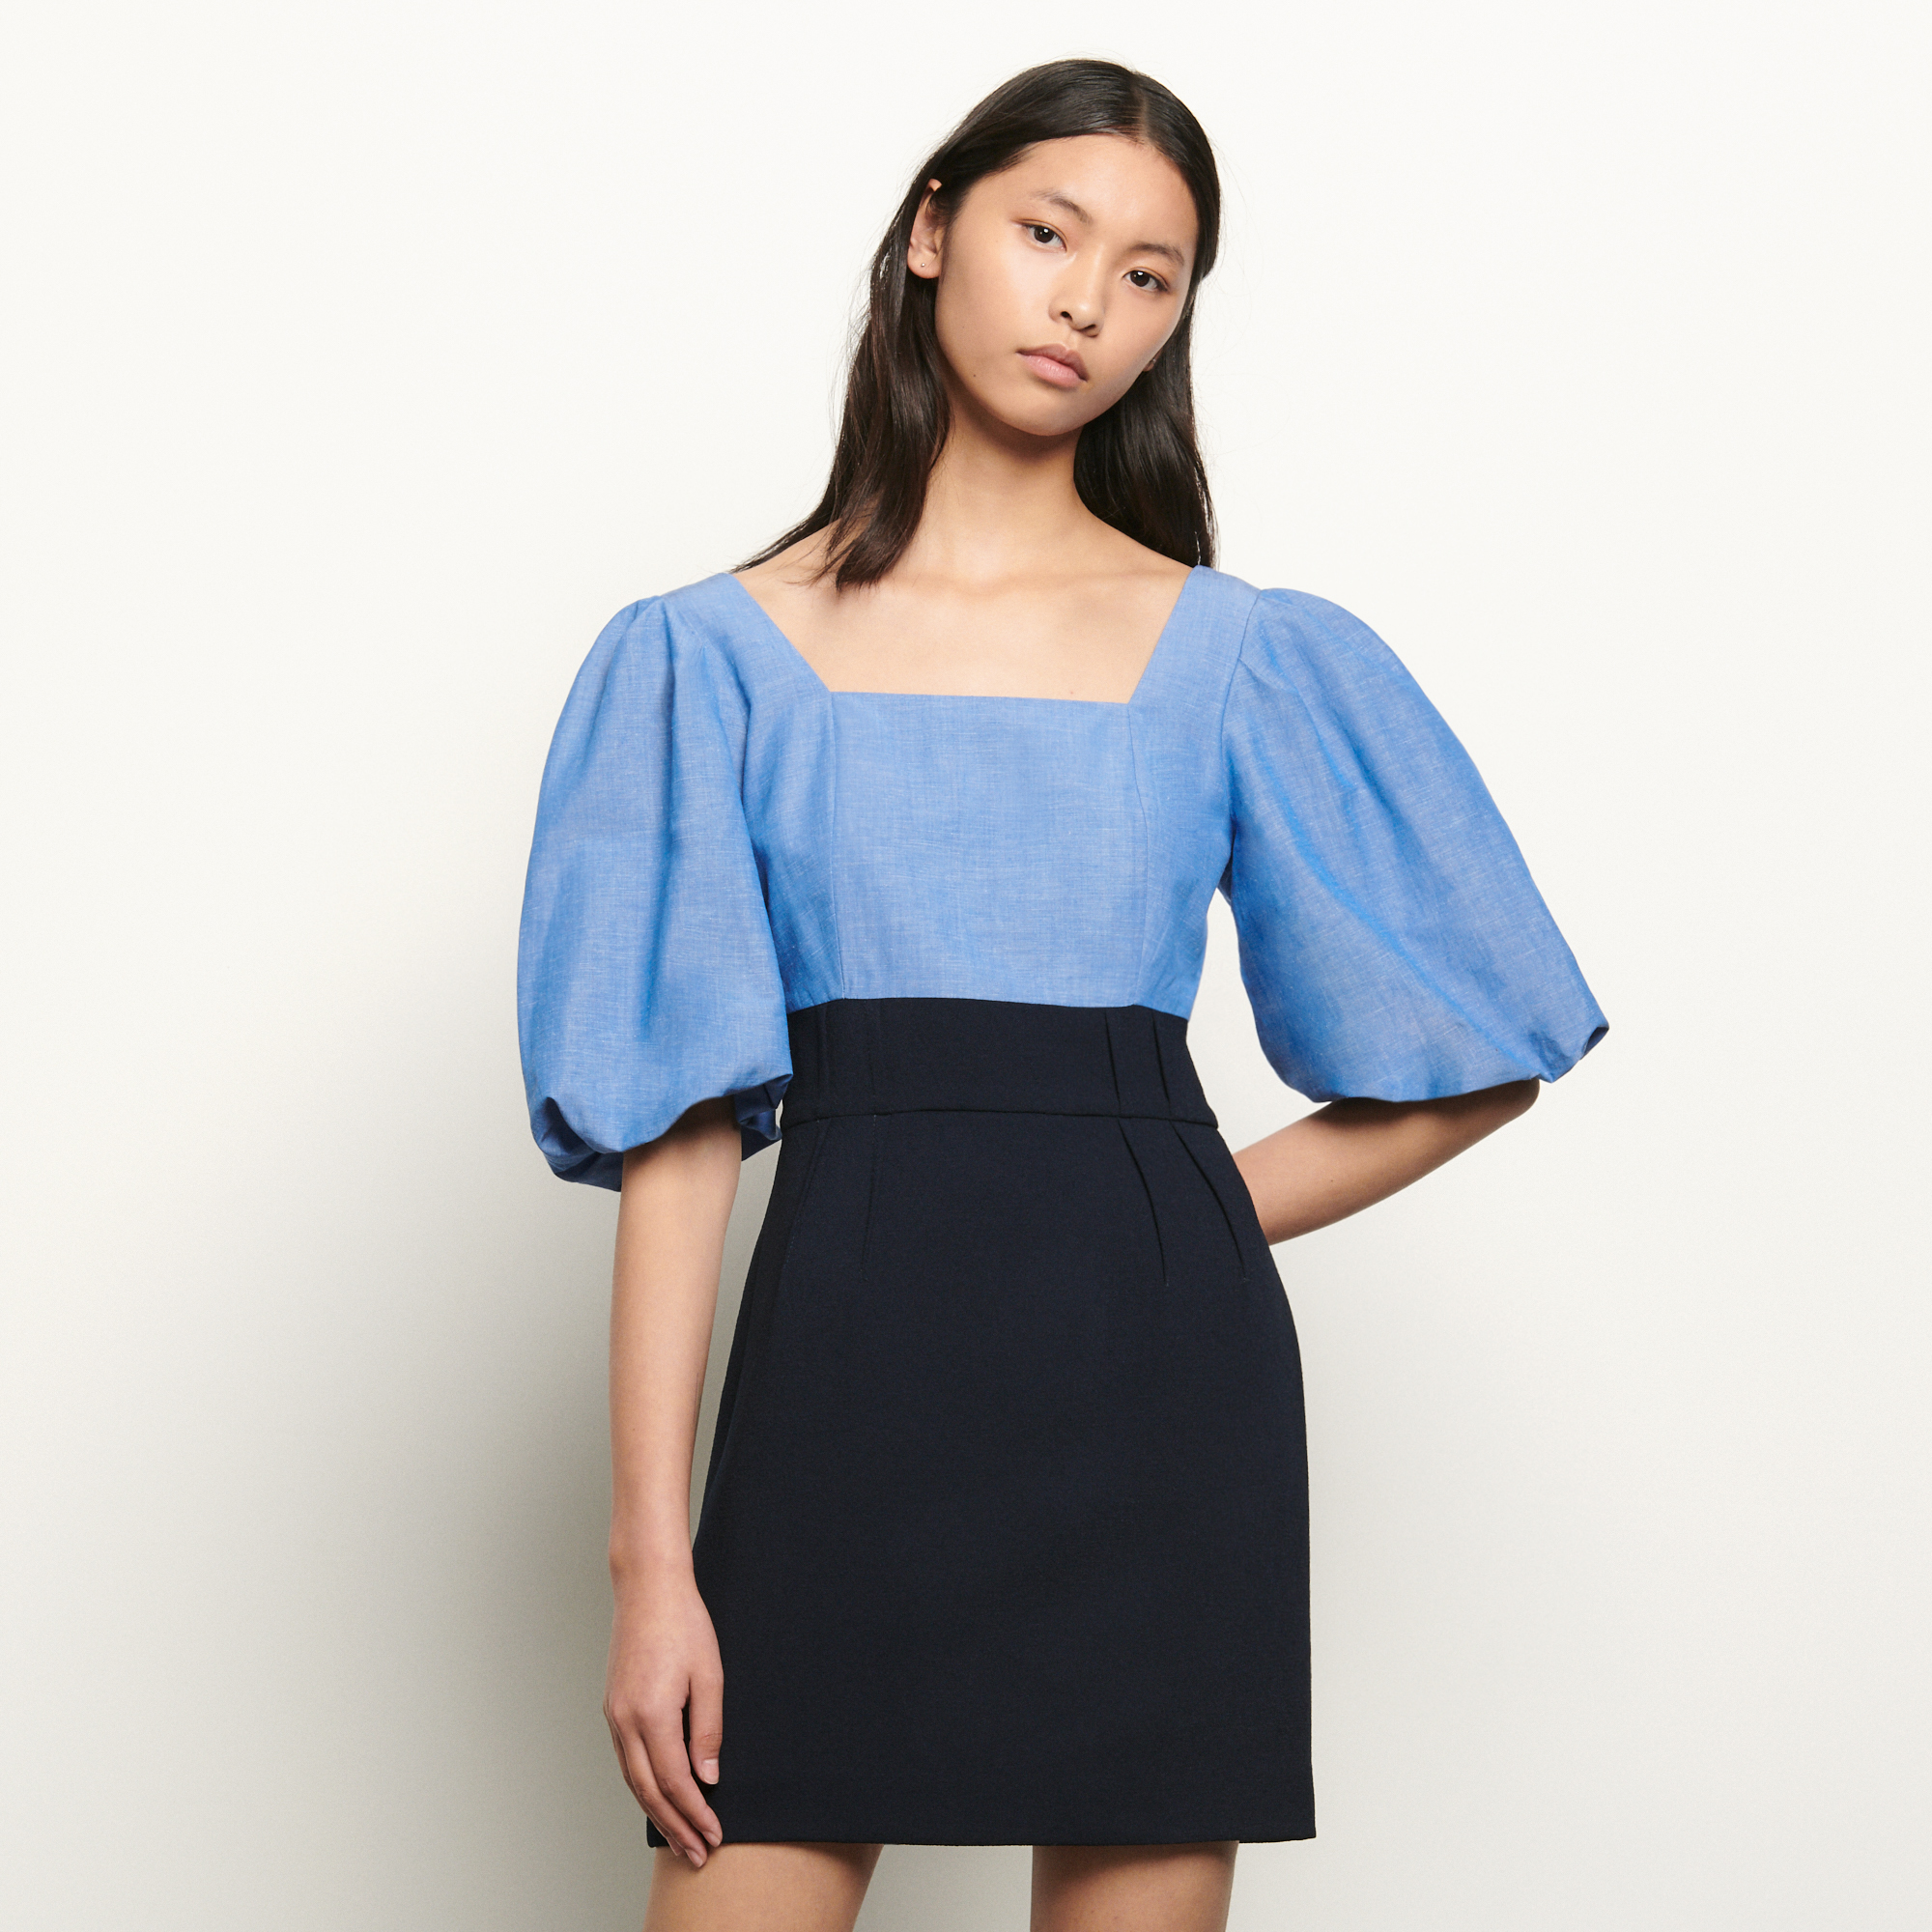 Dual material dress with square neckline - Blue